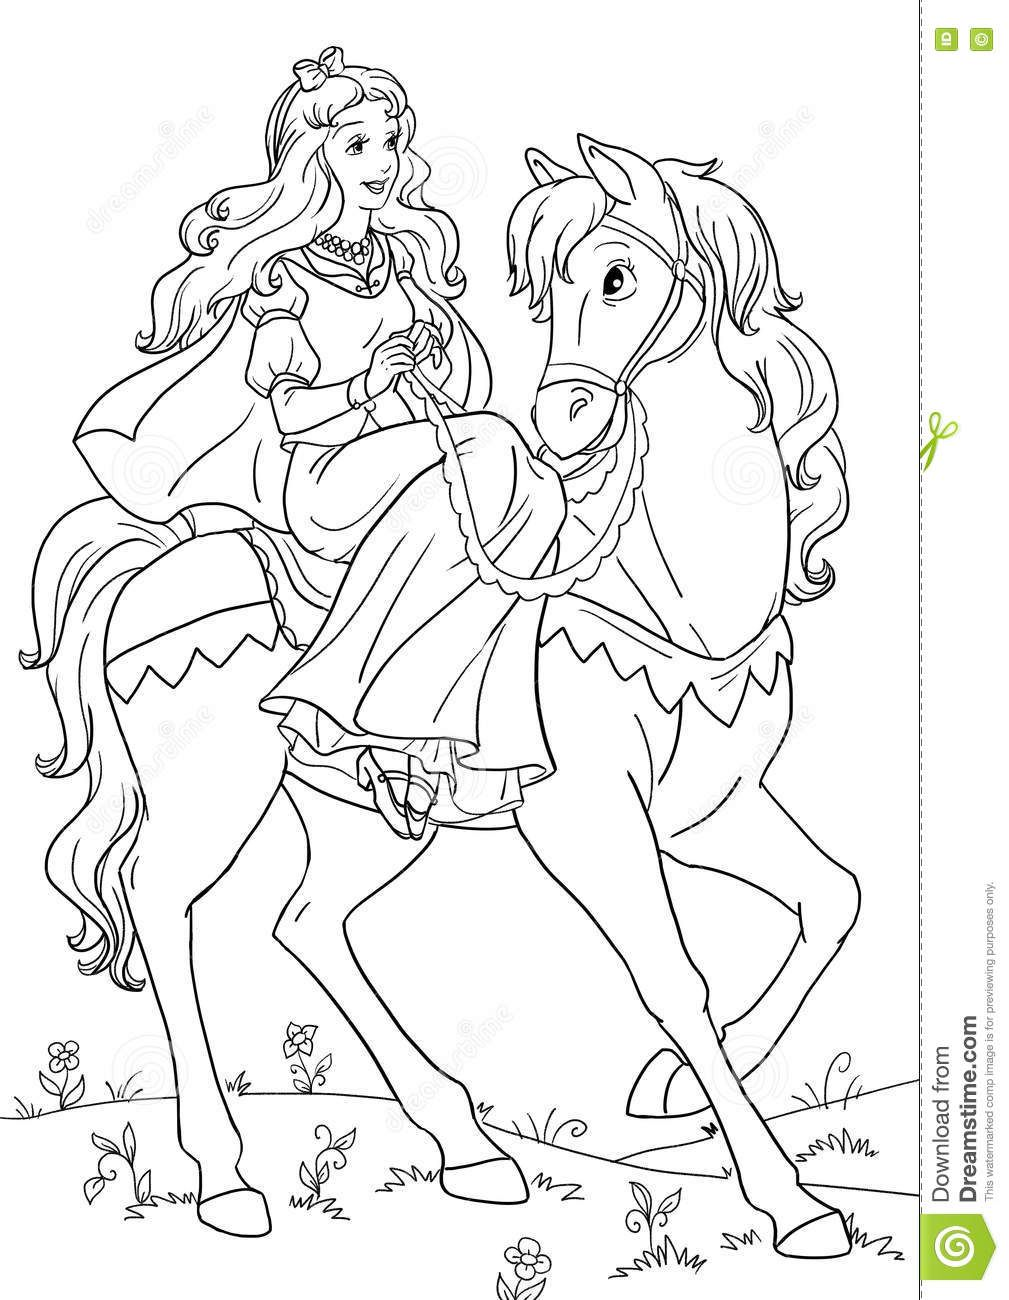 Horsed Princess Unicorn Coloring Pages Horse Coloring Pages Horse Coloring Books [ 1300 x 1009 Pixel ]